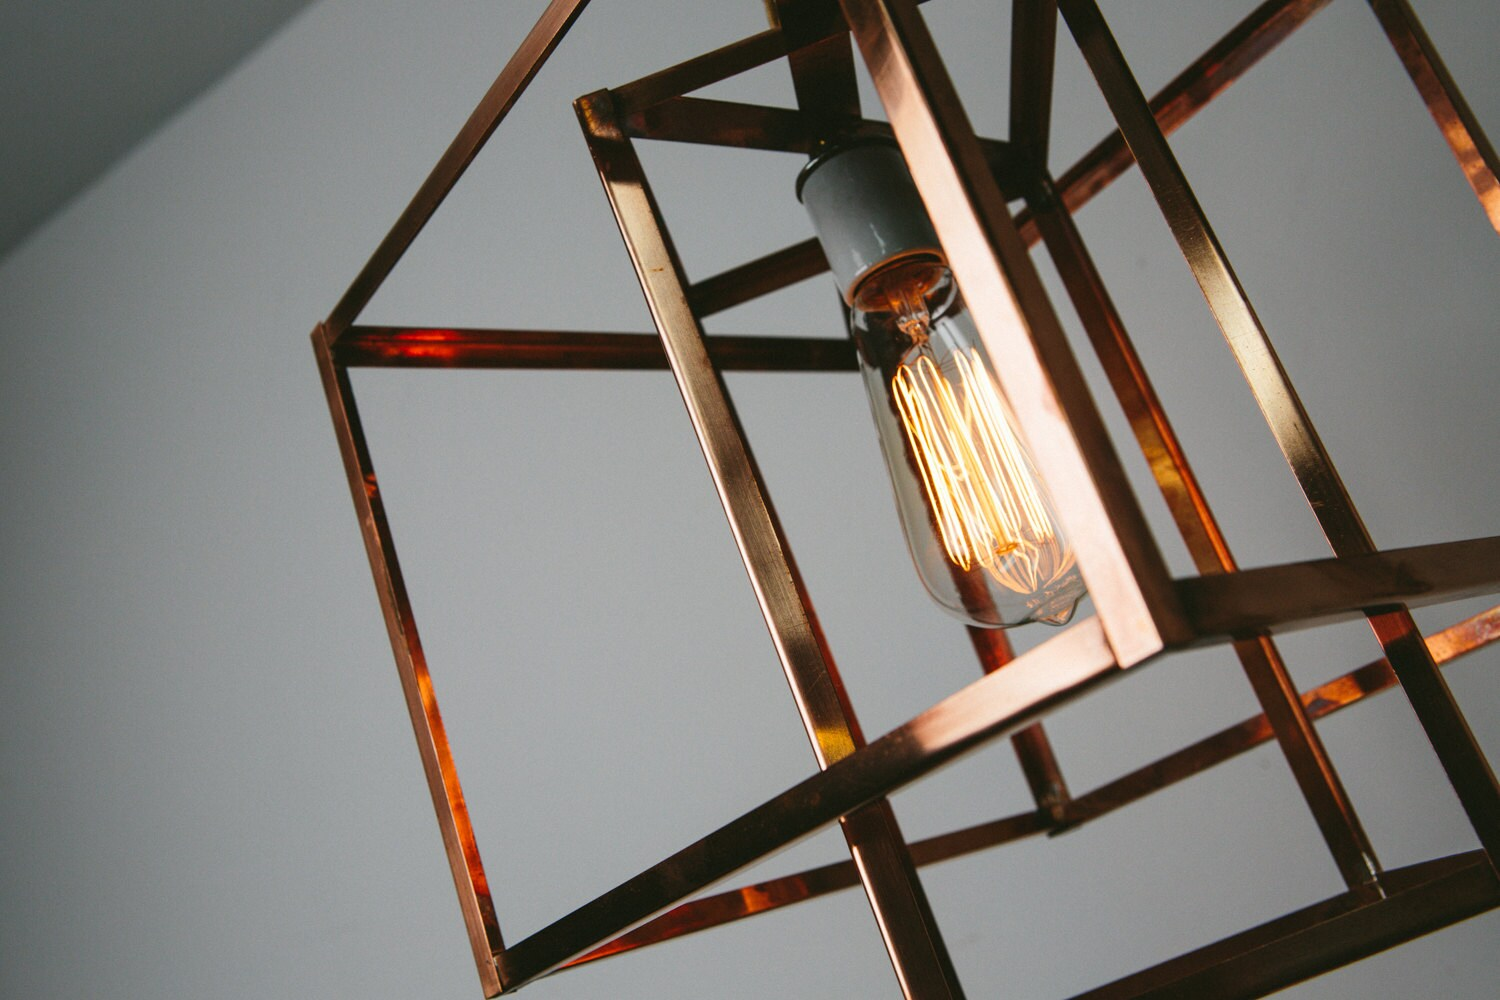 acrylic bronze clear style copper htm for fixture photo larger pendant su ceiling edison vintage p view bulbs light antique